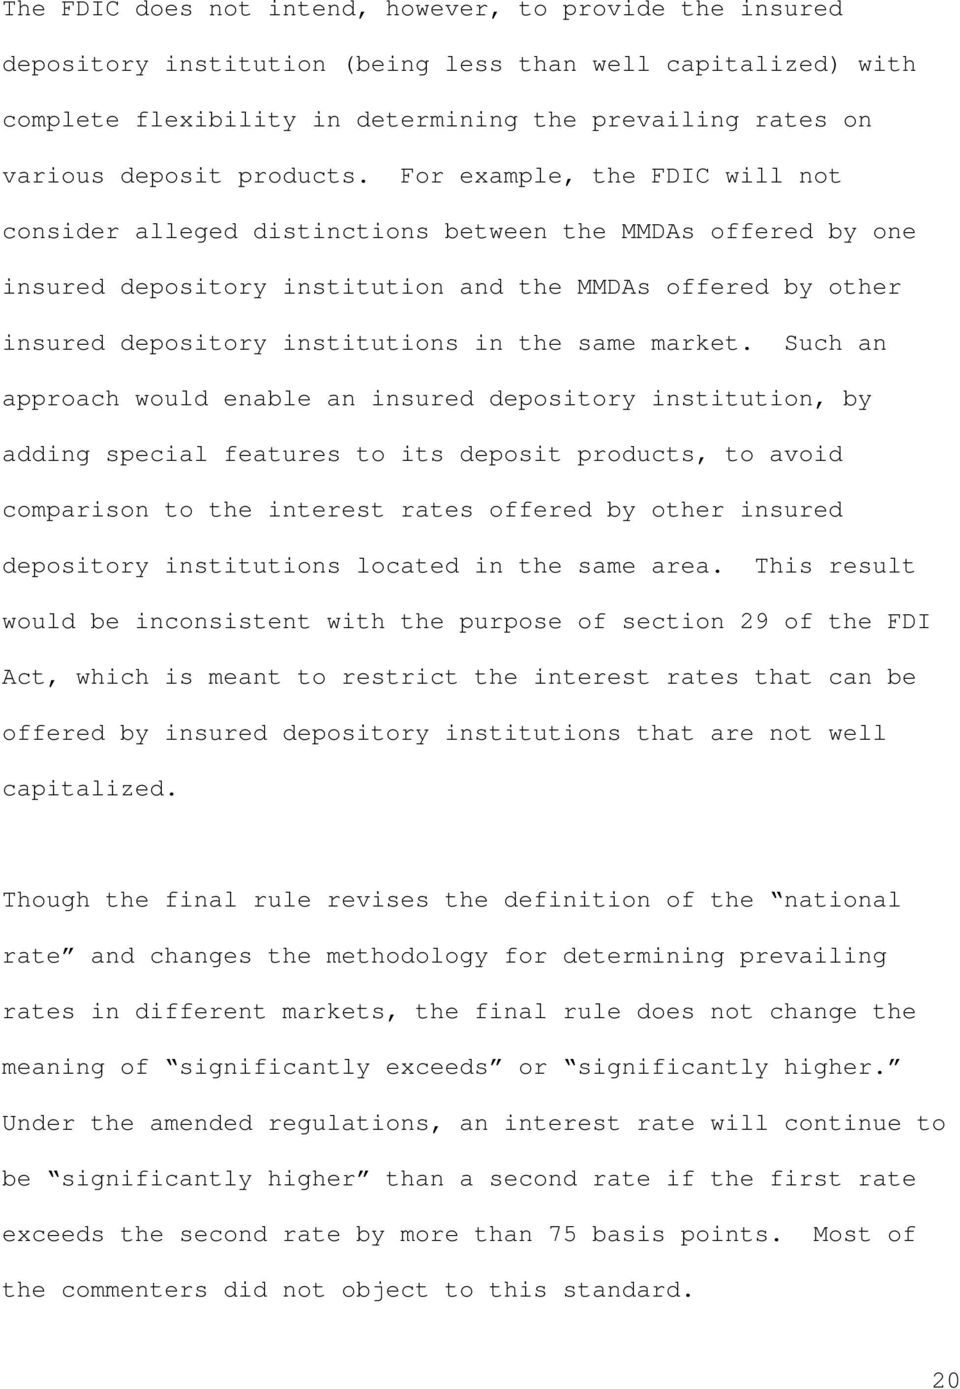 For example, the FDIC will not consider alleged distinctions between the MMDAs offered by one insured depository institution and the MMDAs offered by other insured depository institutions in the same